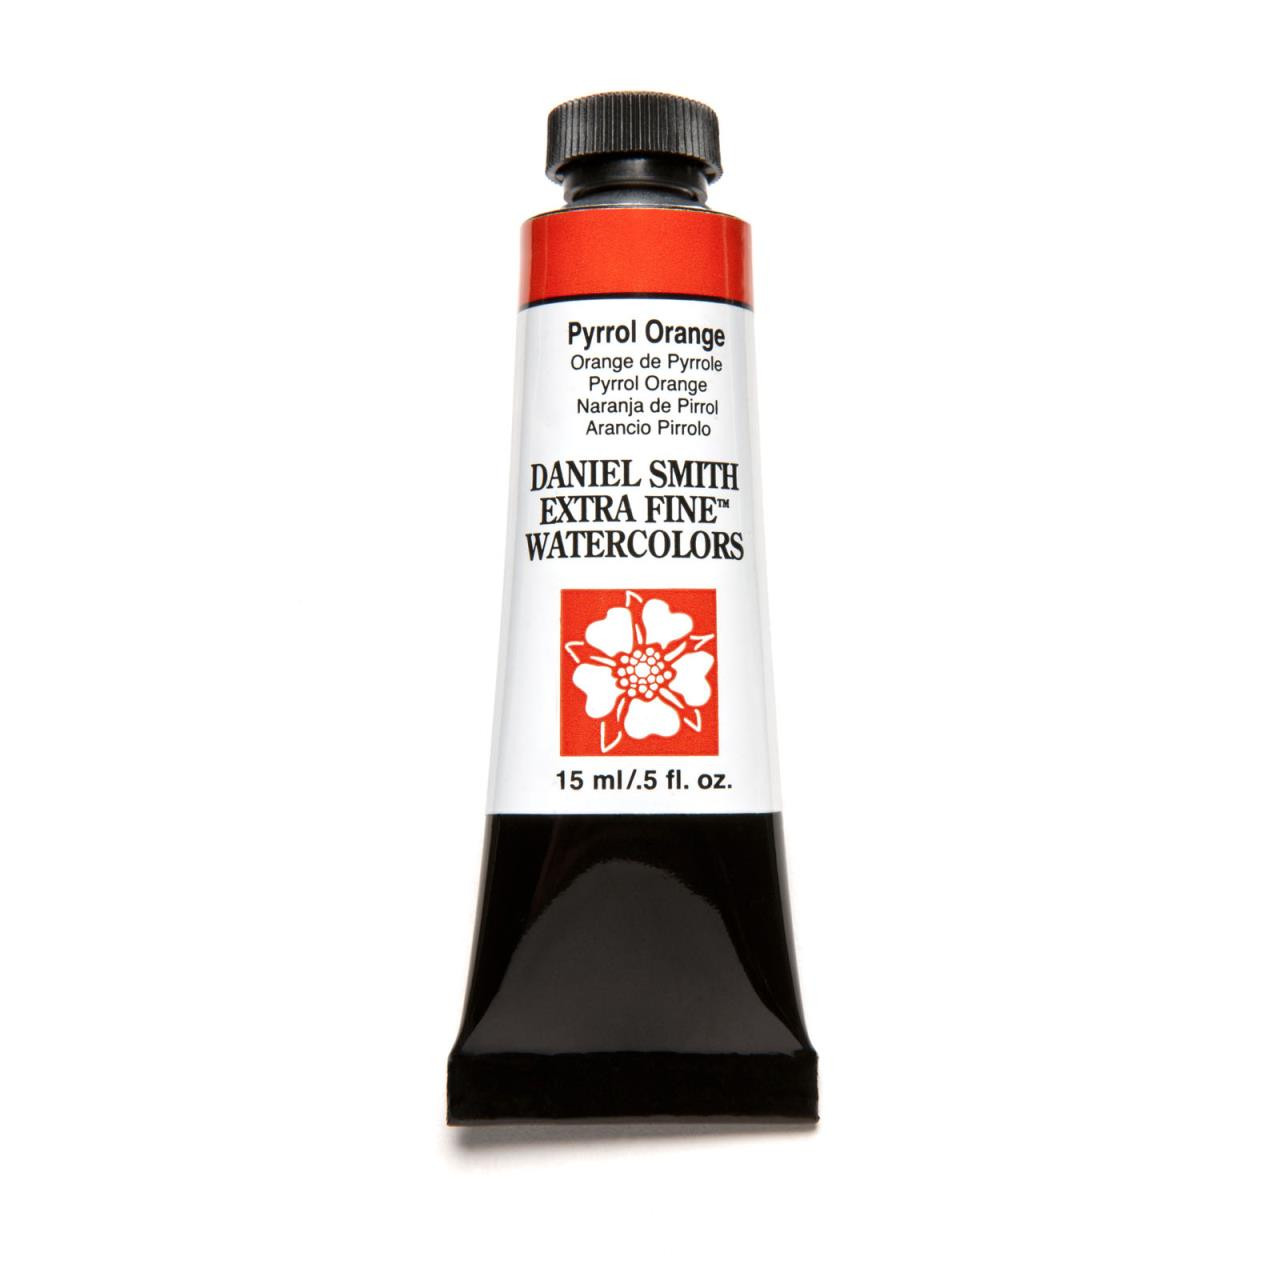 DANIEL SMITH Extra Fine Watercolors 15ml Tubes, Pyrrol Orange - 743162014644